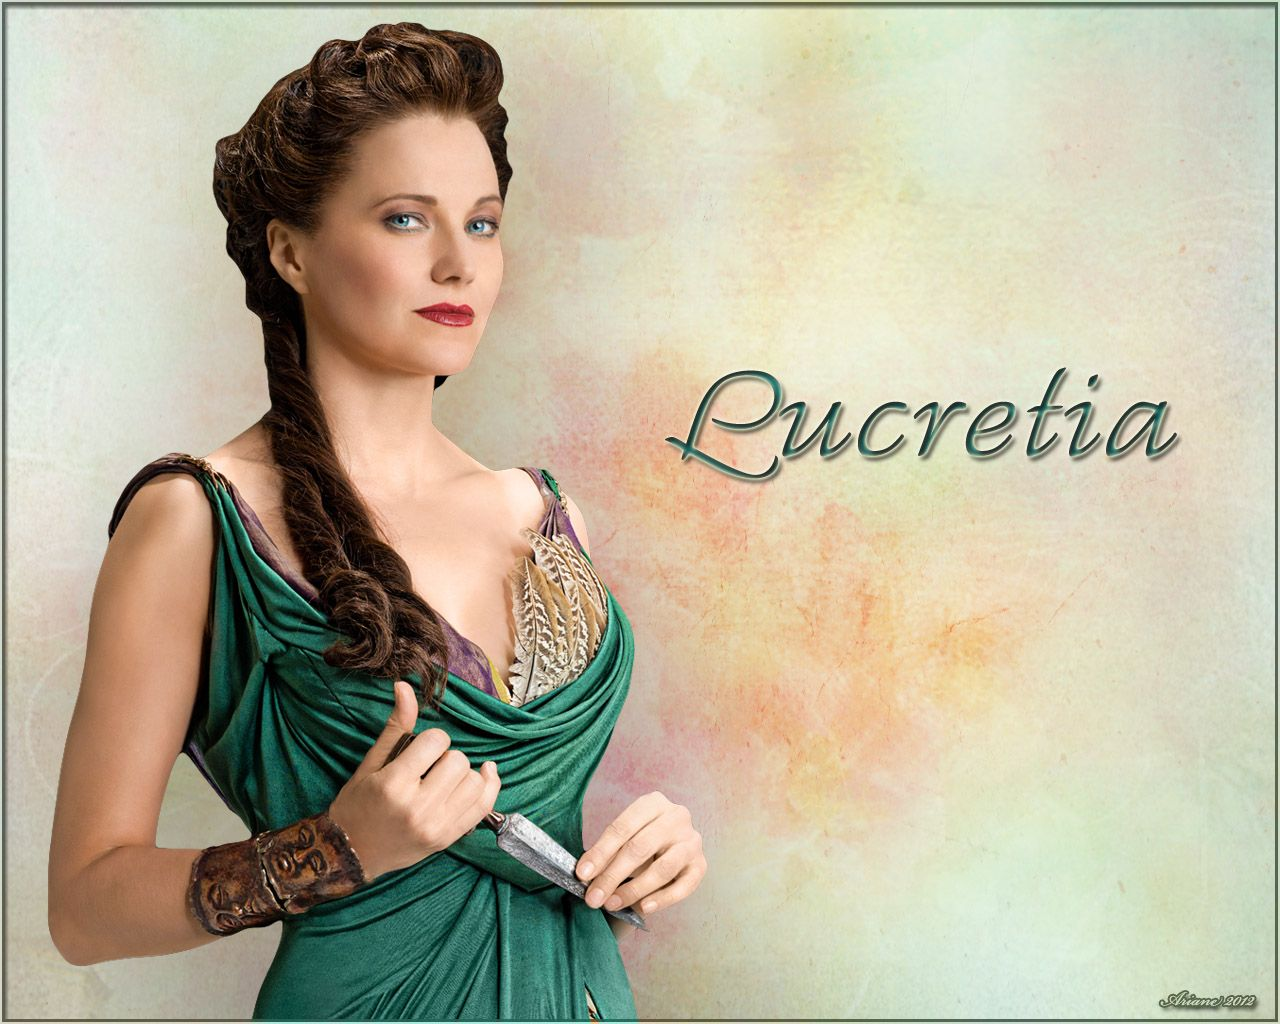 Laurence olivier spartacus quotes - Lucy Lawless As Lucretia In Spartacus Blood And Sand Season 1 Promo